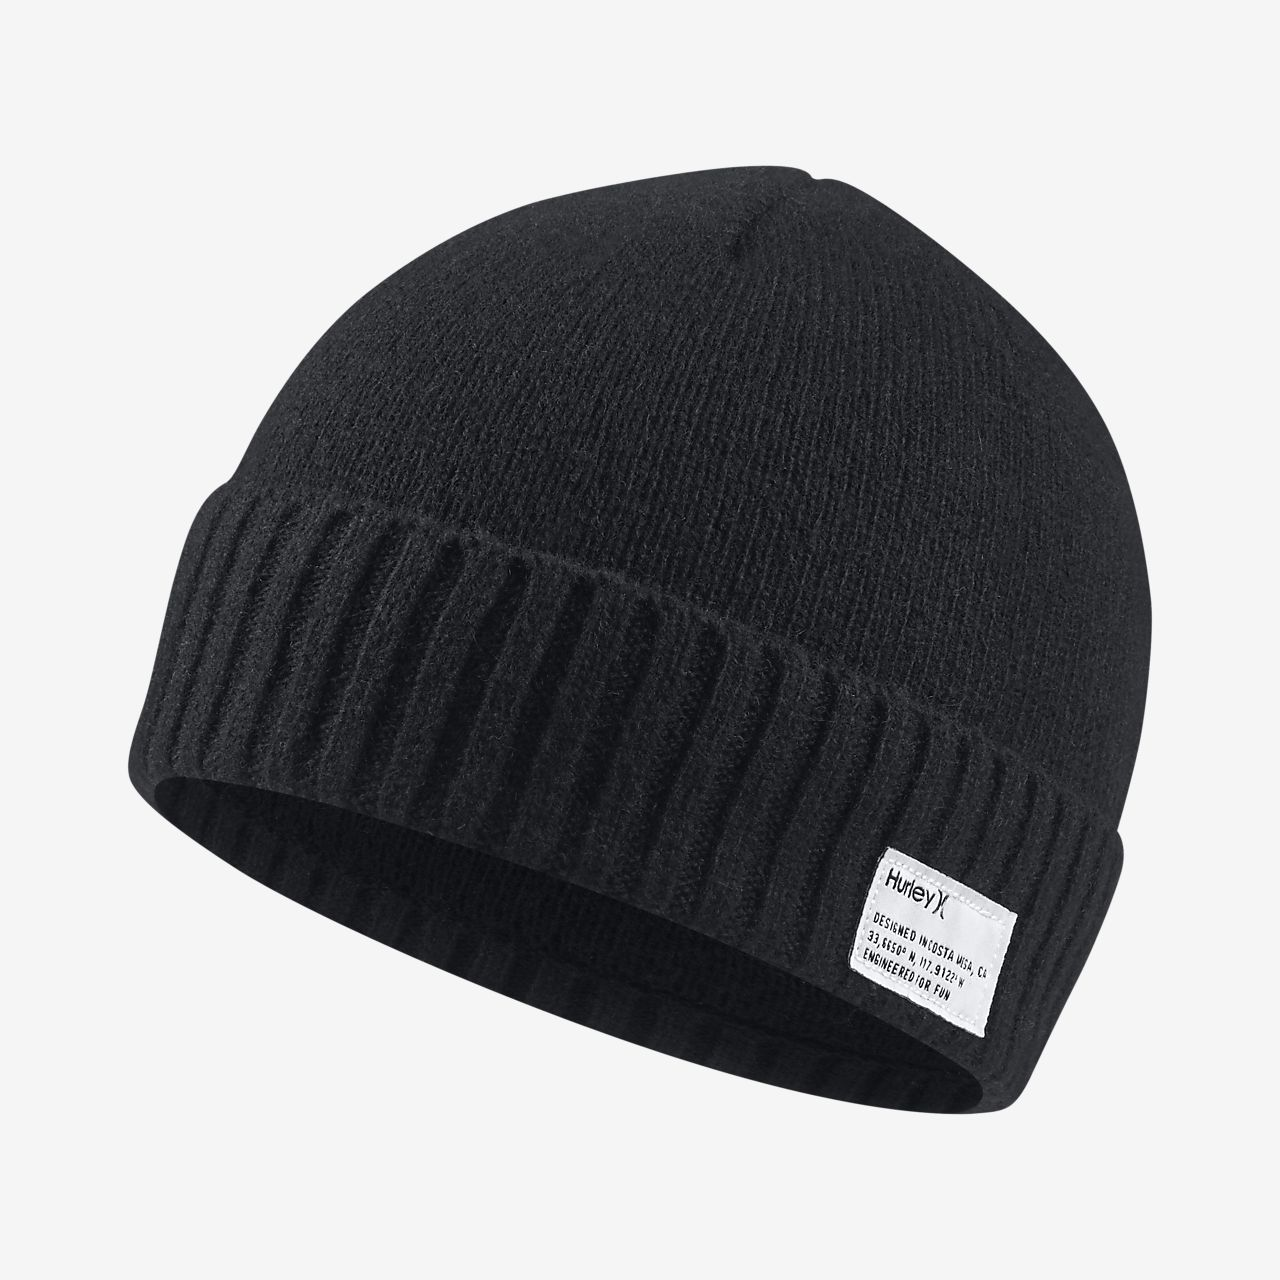 Hurley Shoreman  Men's Beanie